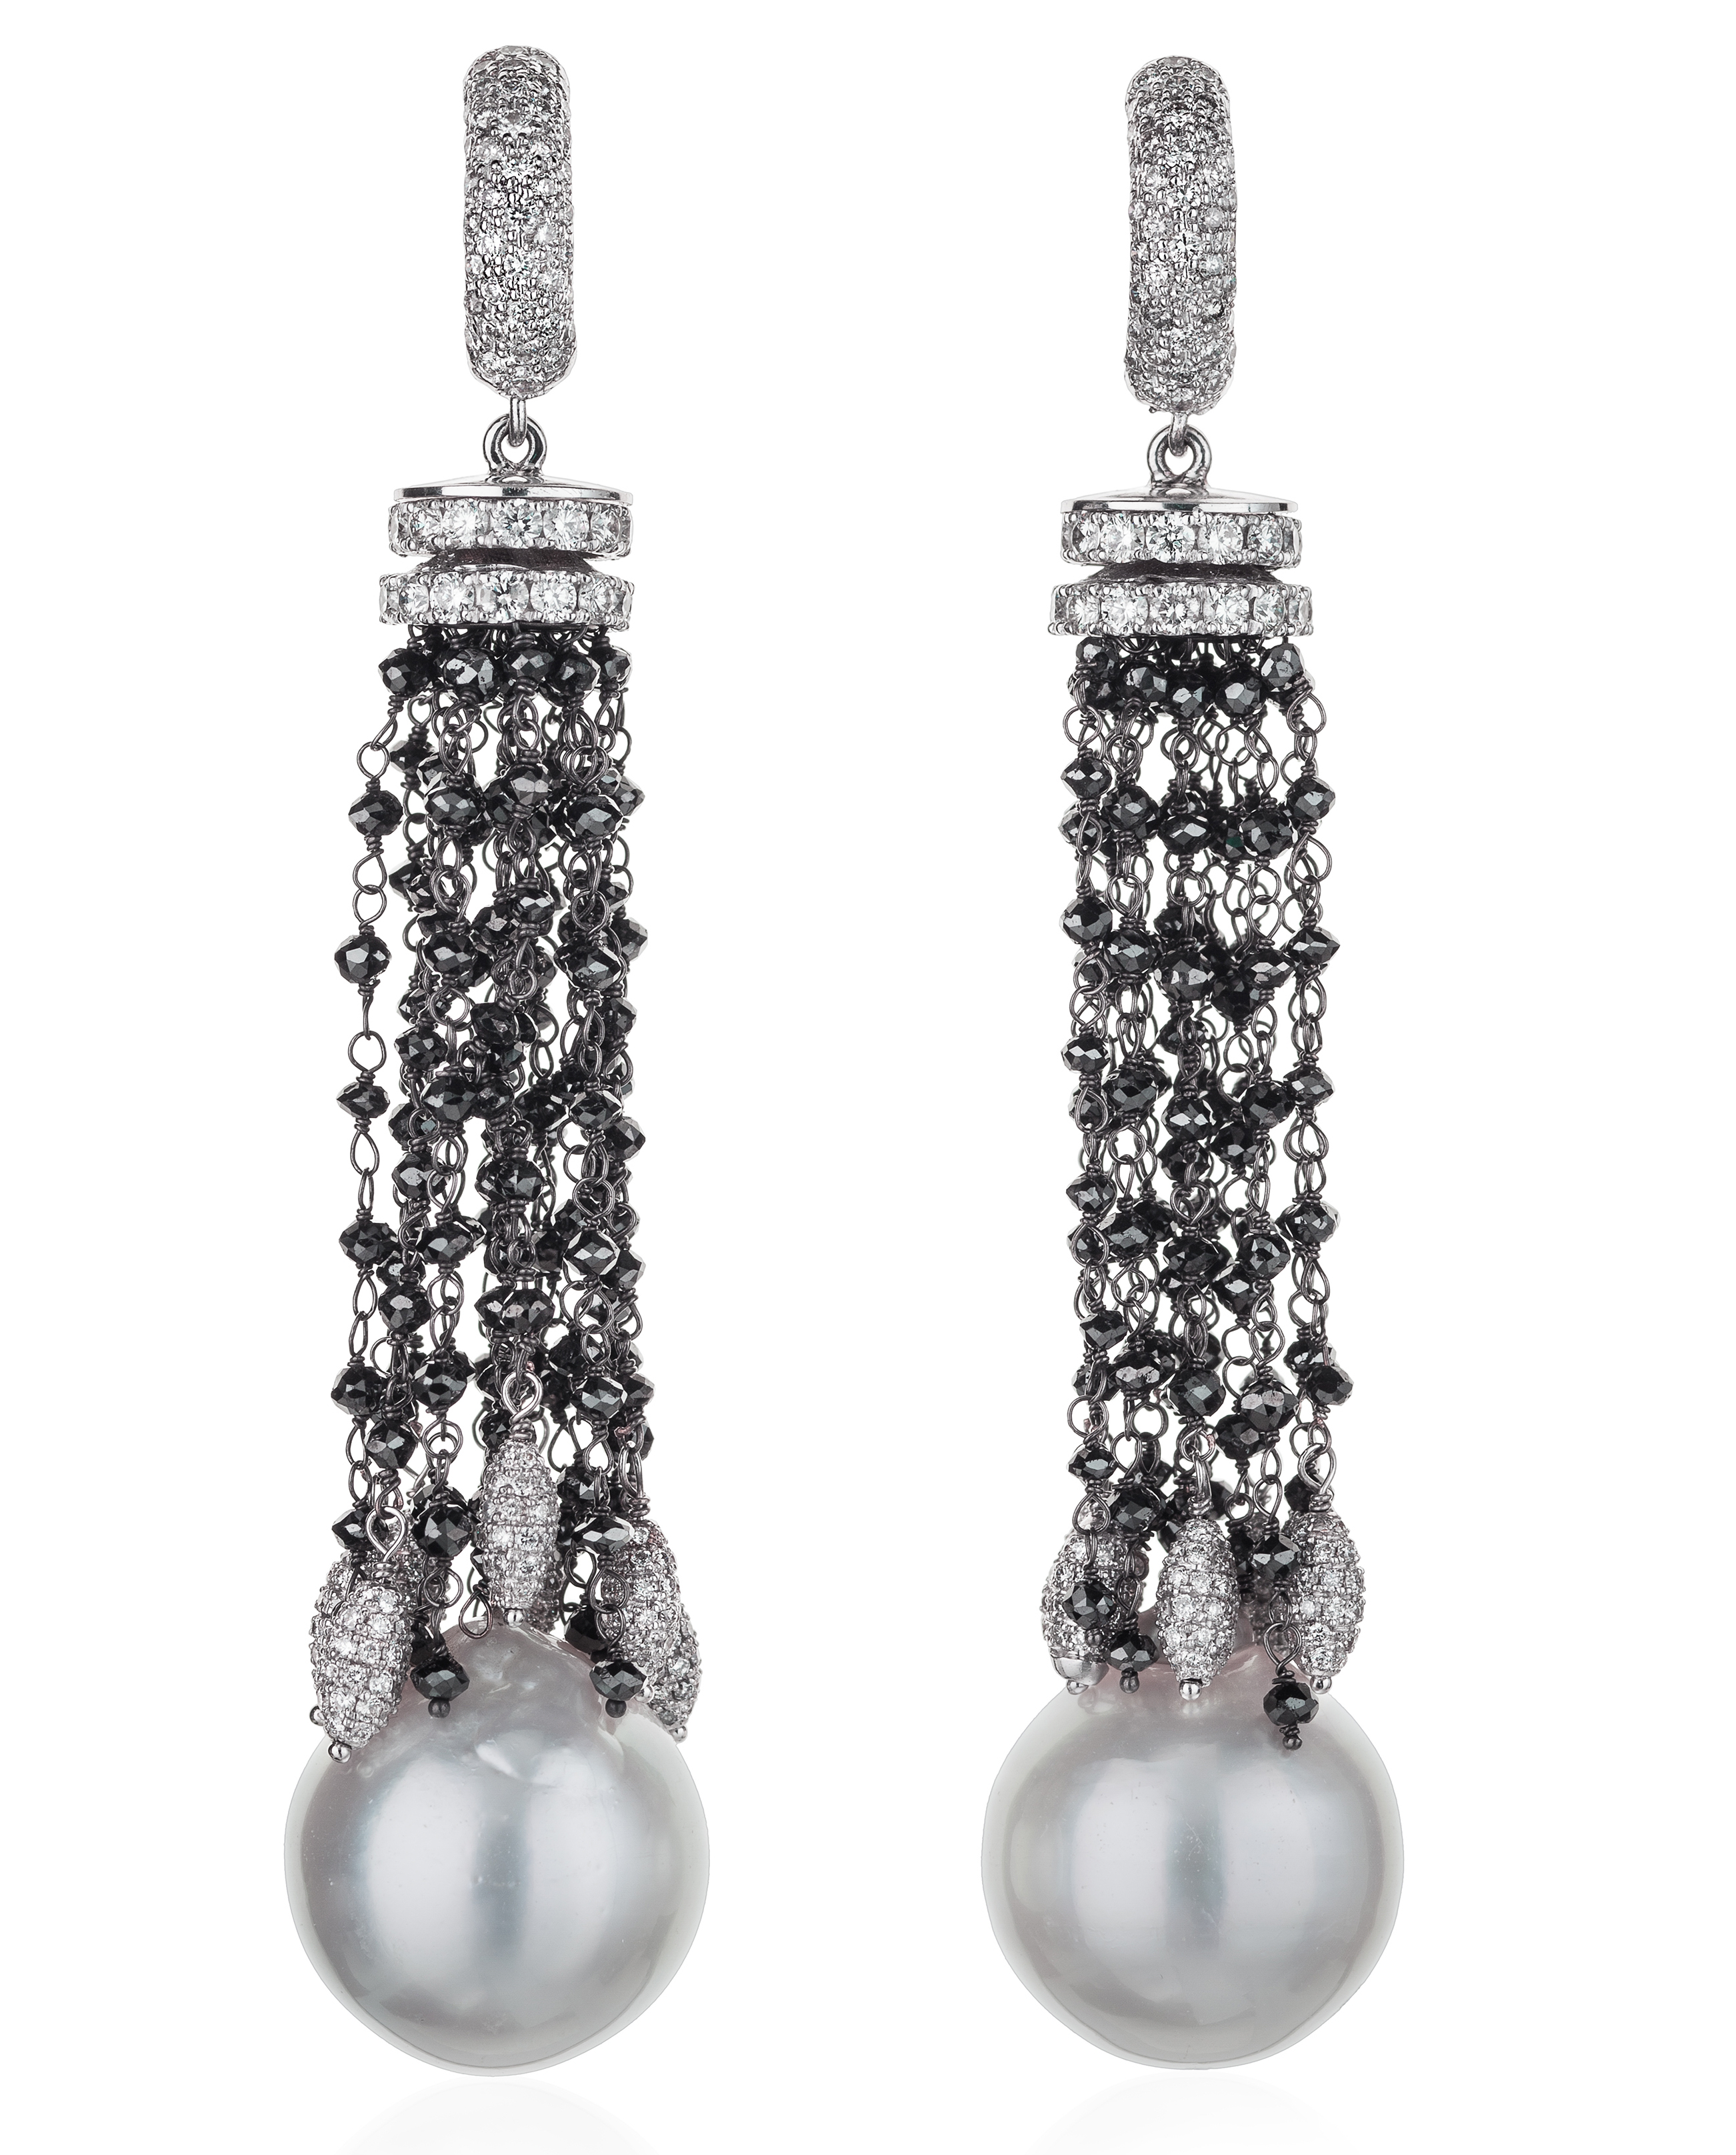 Yvel chandelier pearl drop earrings | JCK On Your Market